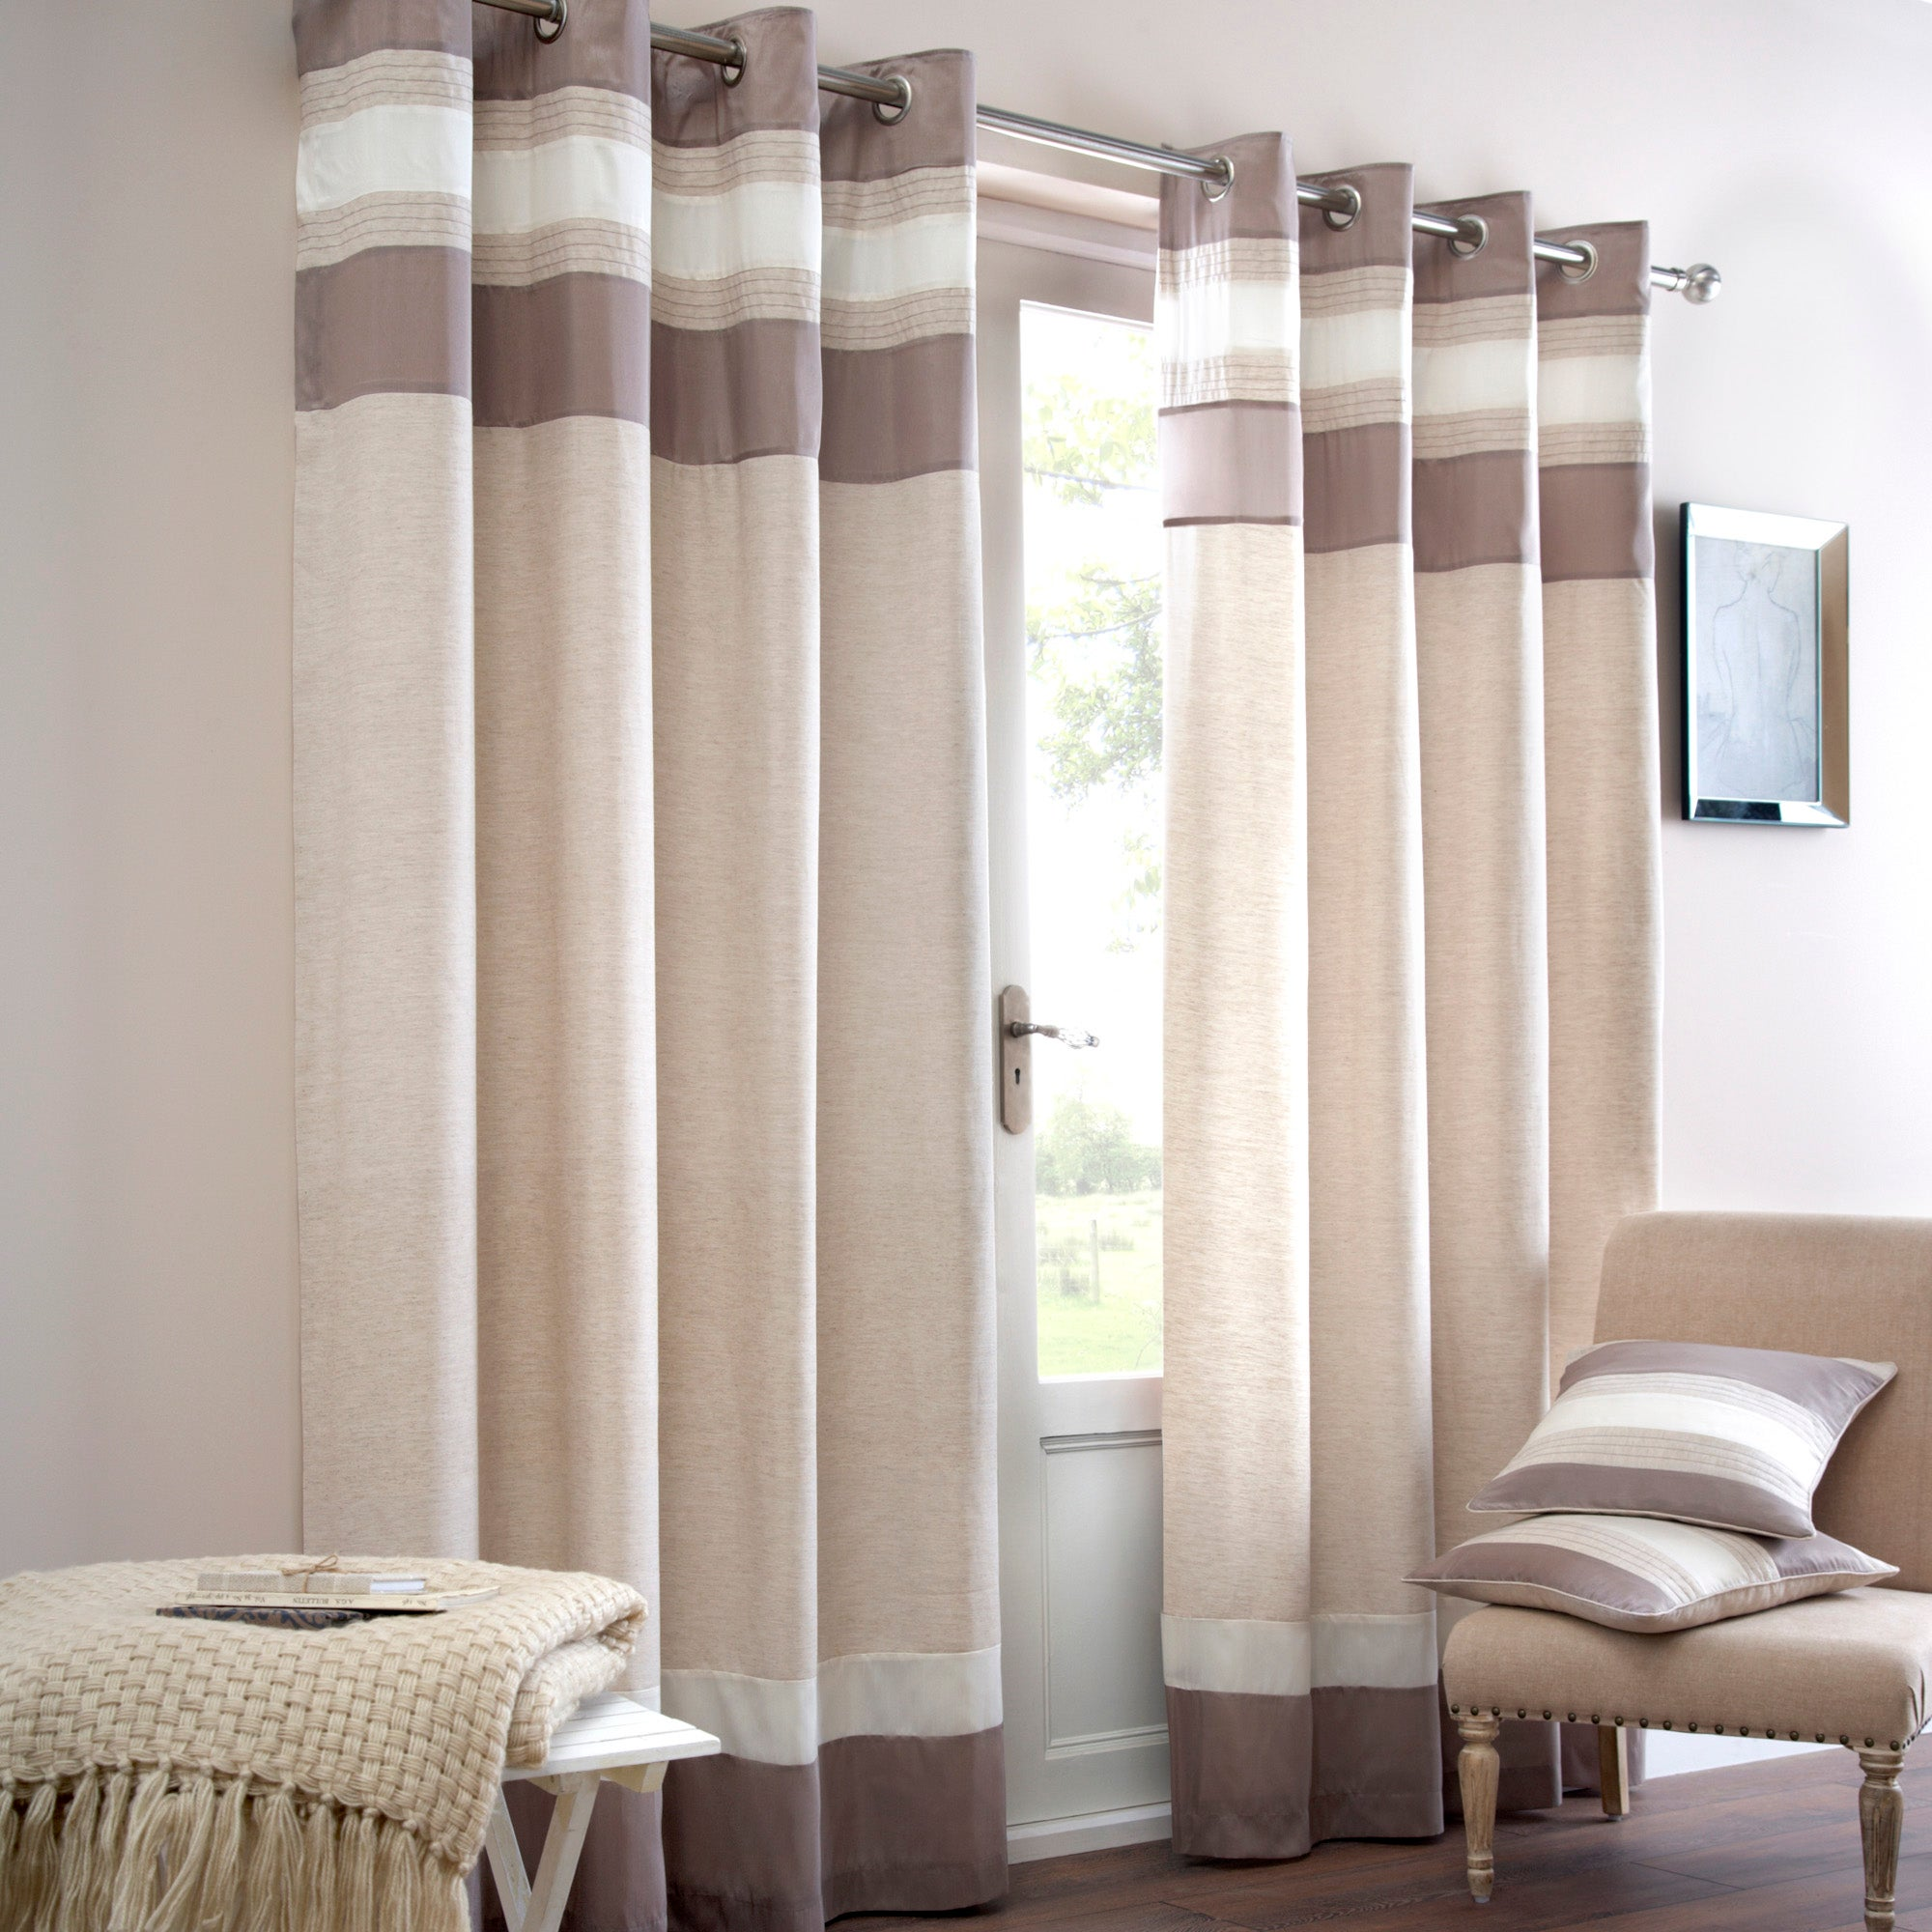 Natural Alban Lined Eyelet Curtains